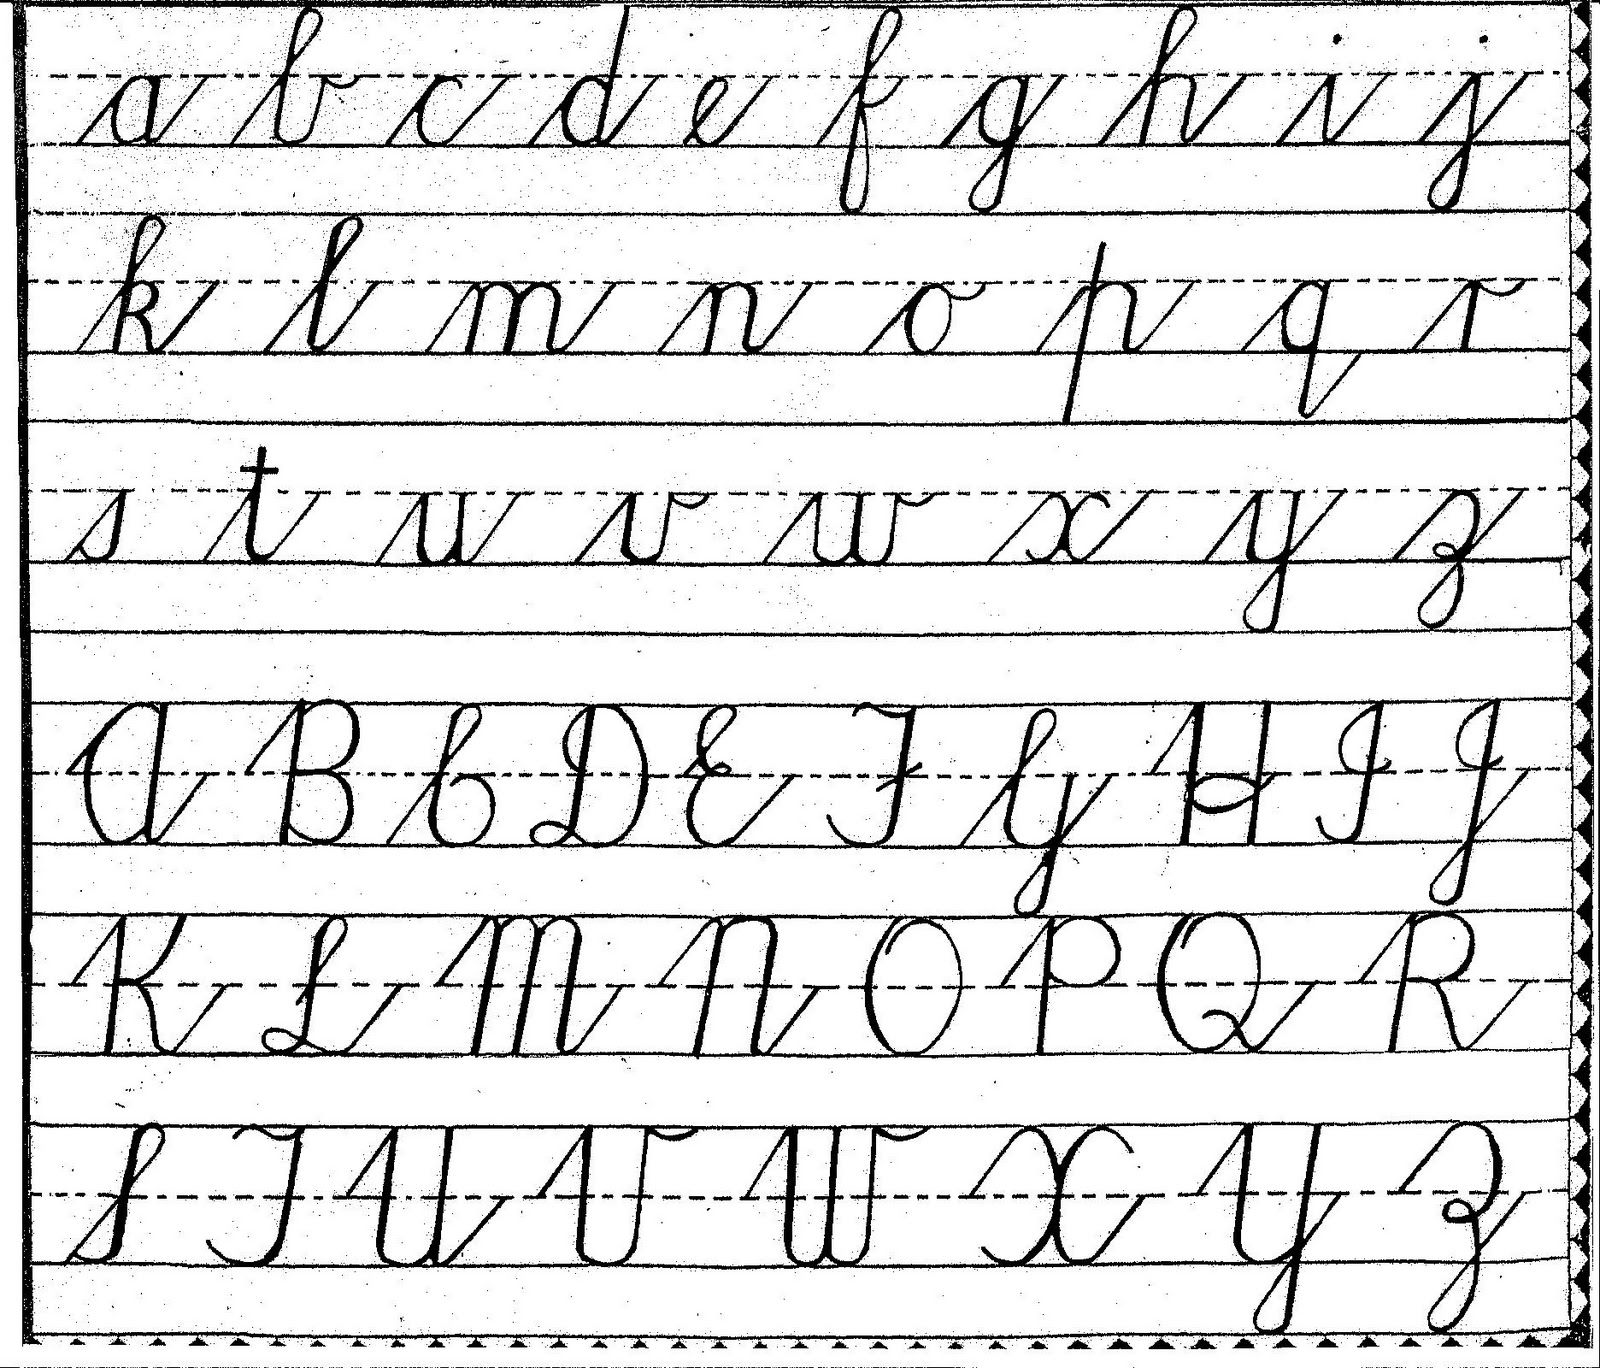 Worksheet Cursive Handwriting Guide collection of free cursive handwriting from all over the world world